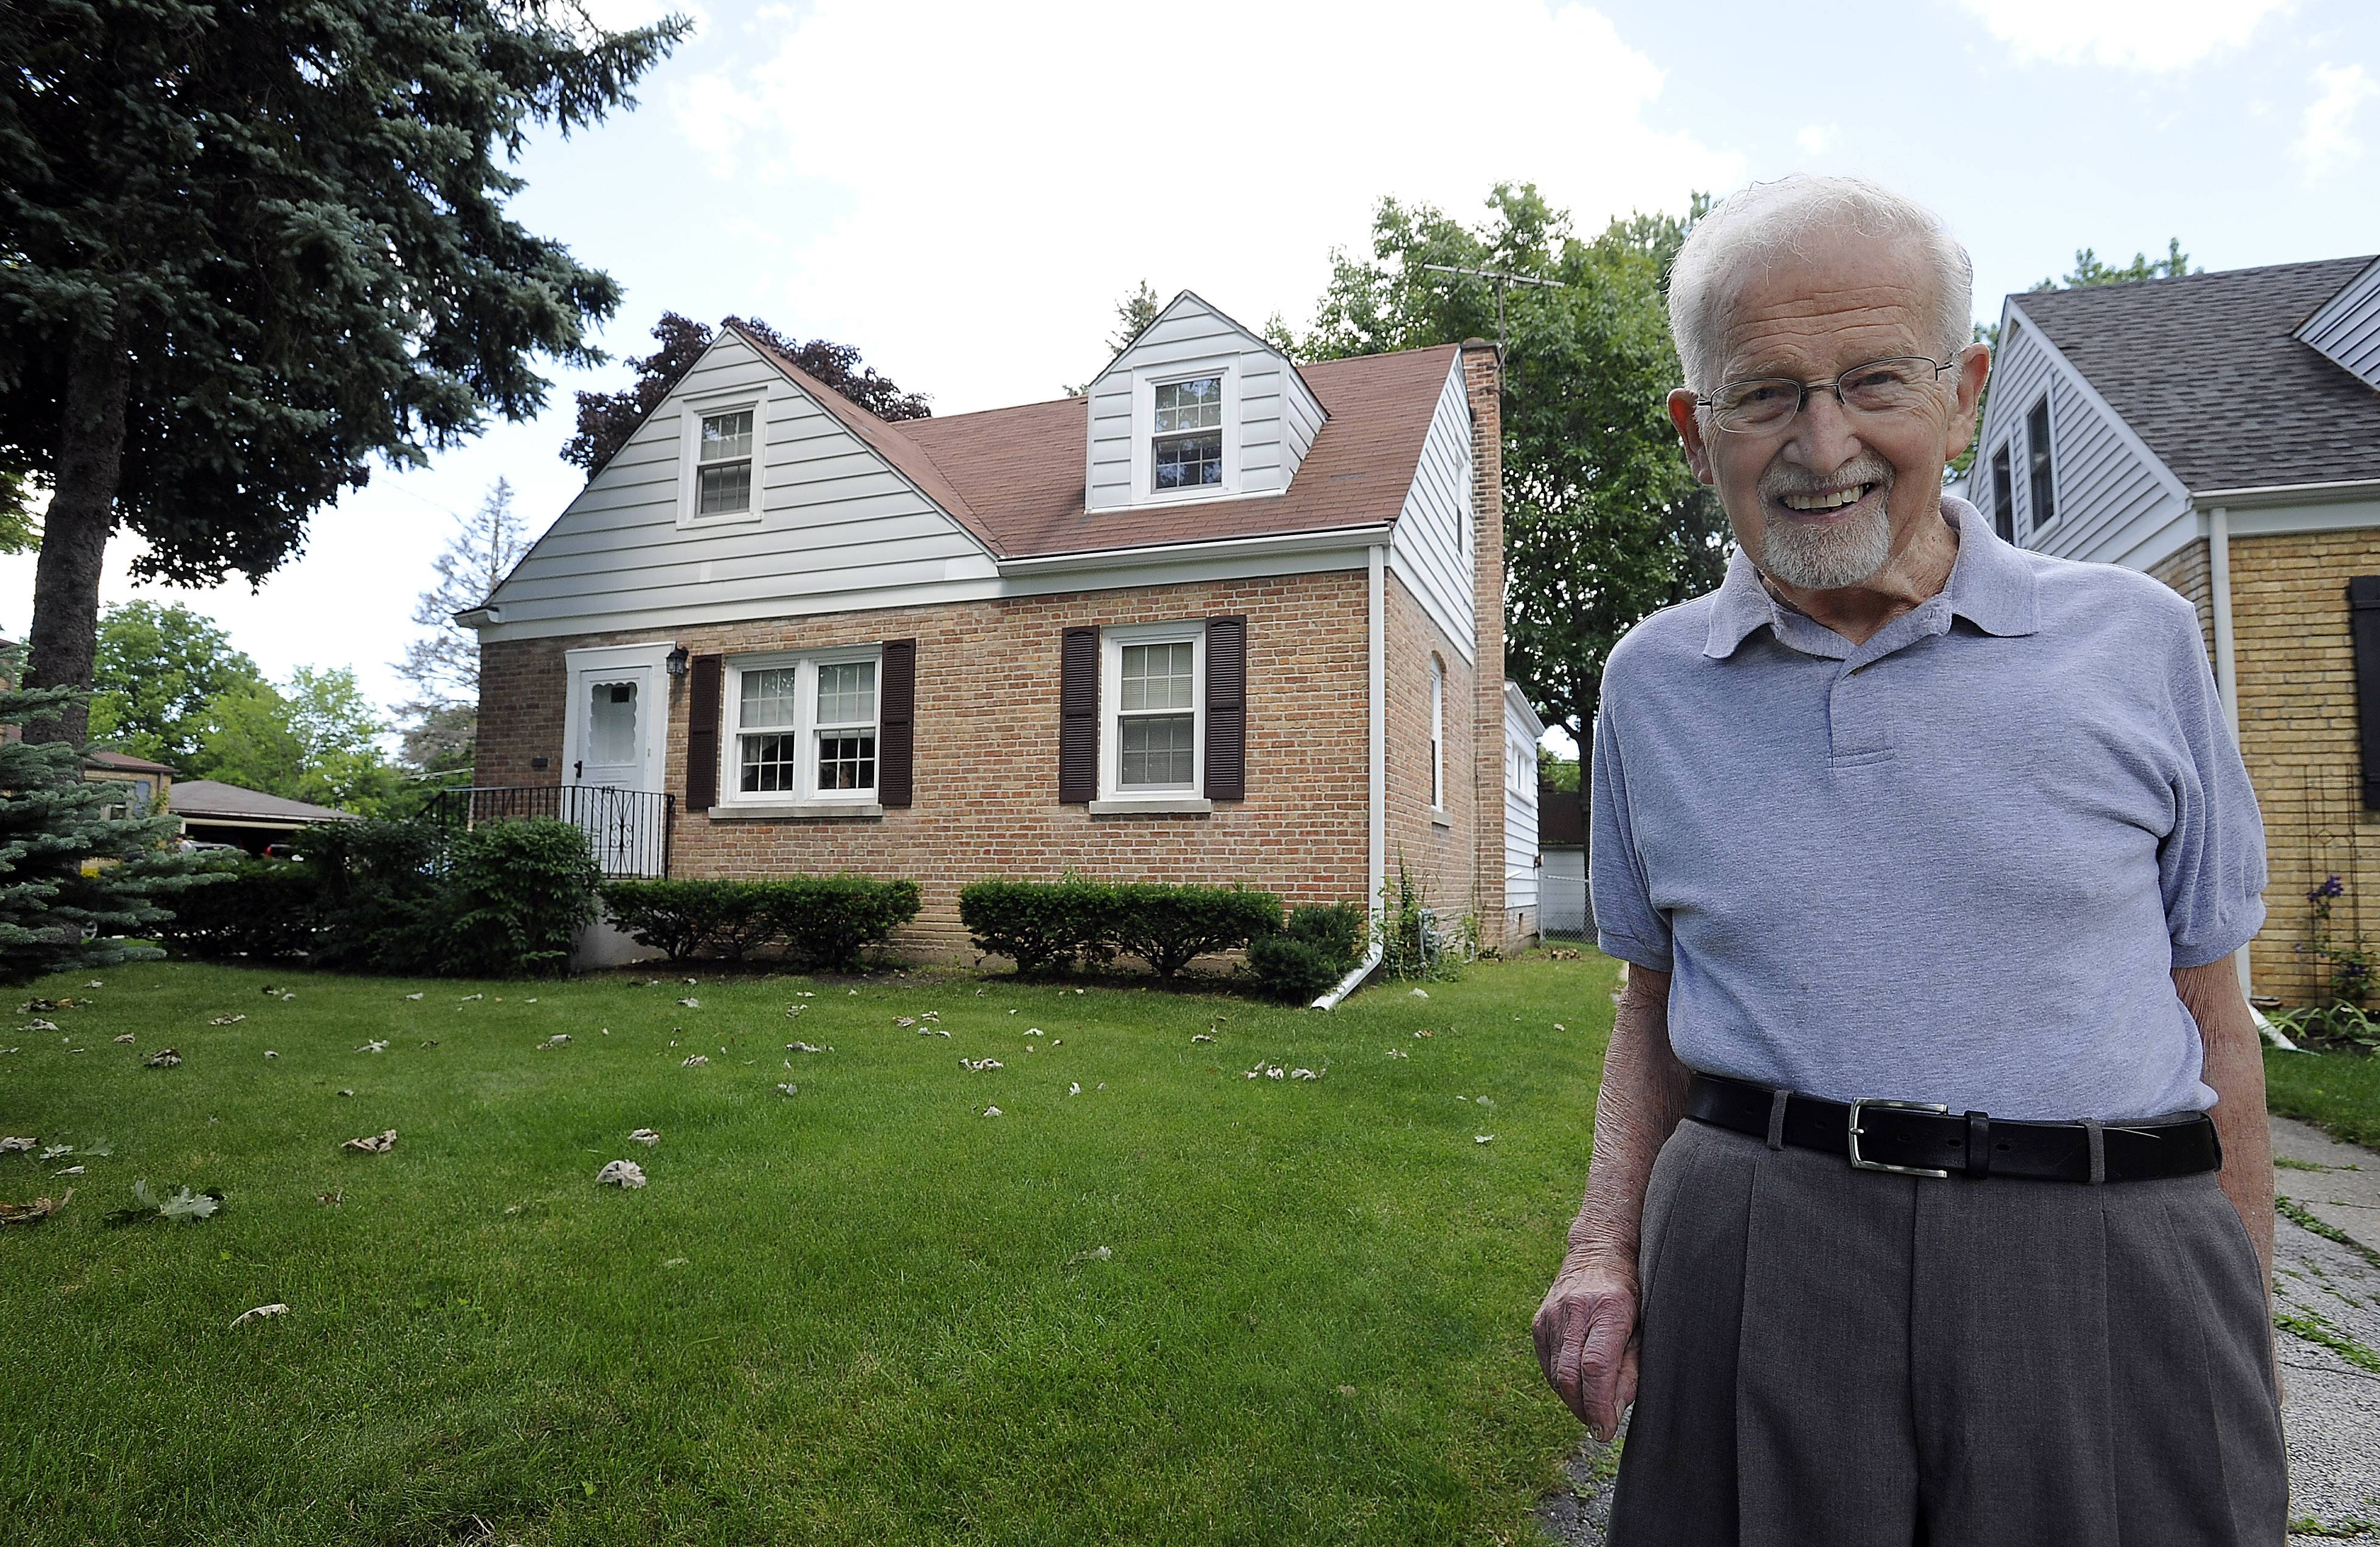 Mount Prospect resident Henry Blim, a 90-year-old veteran of World War II, will receive a free roof for his house as part of local business Peterson Roofing's No Roof Left Behind contest.